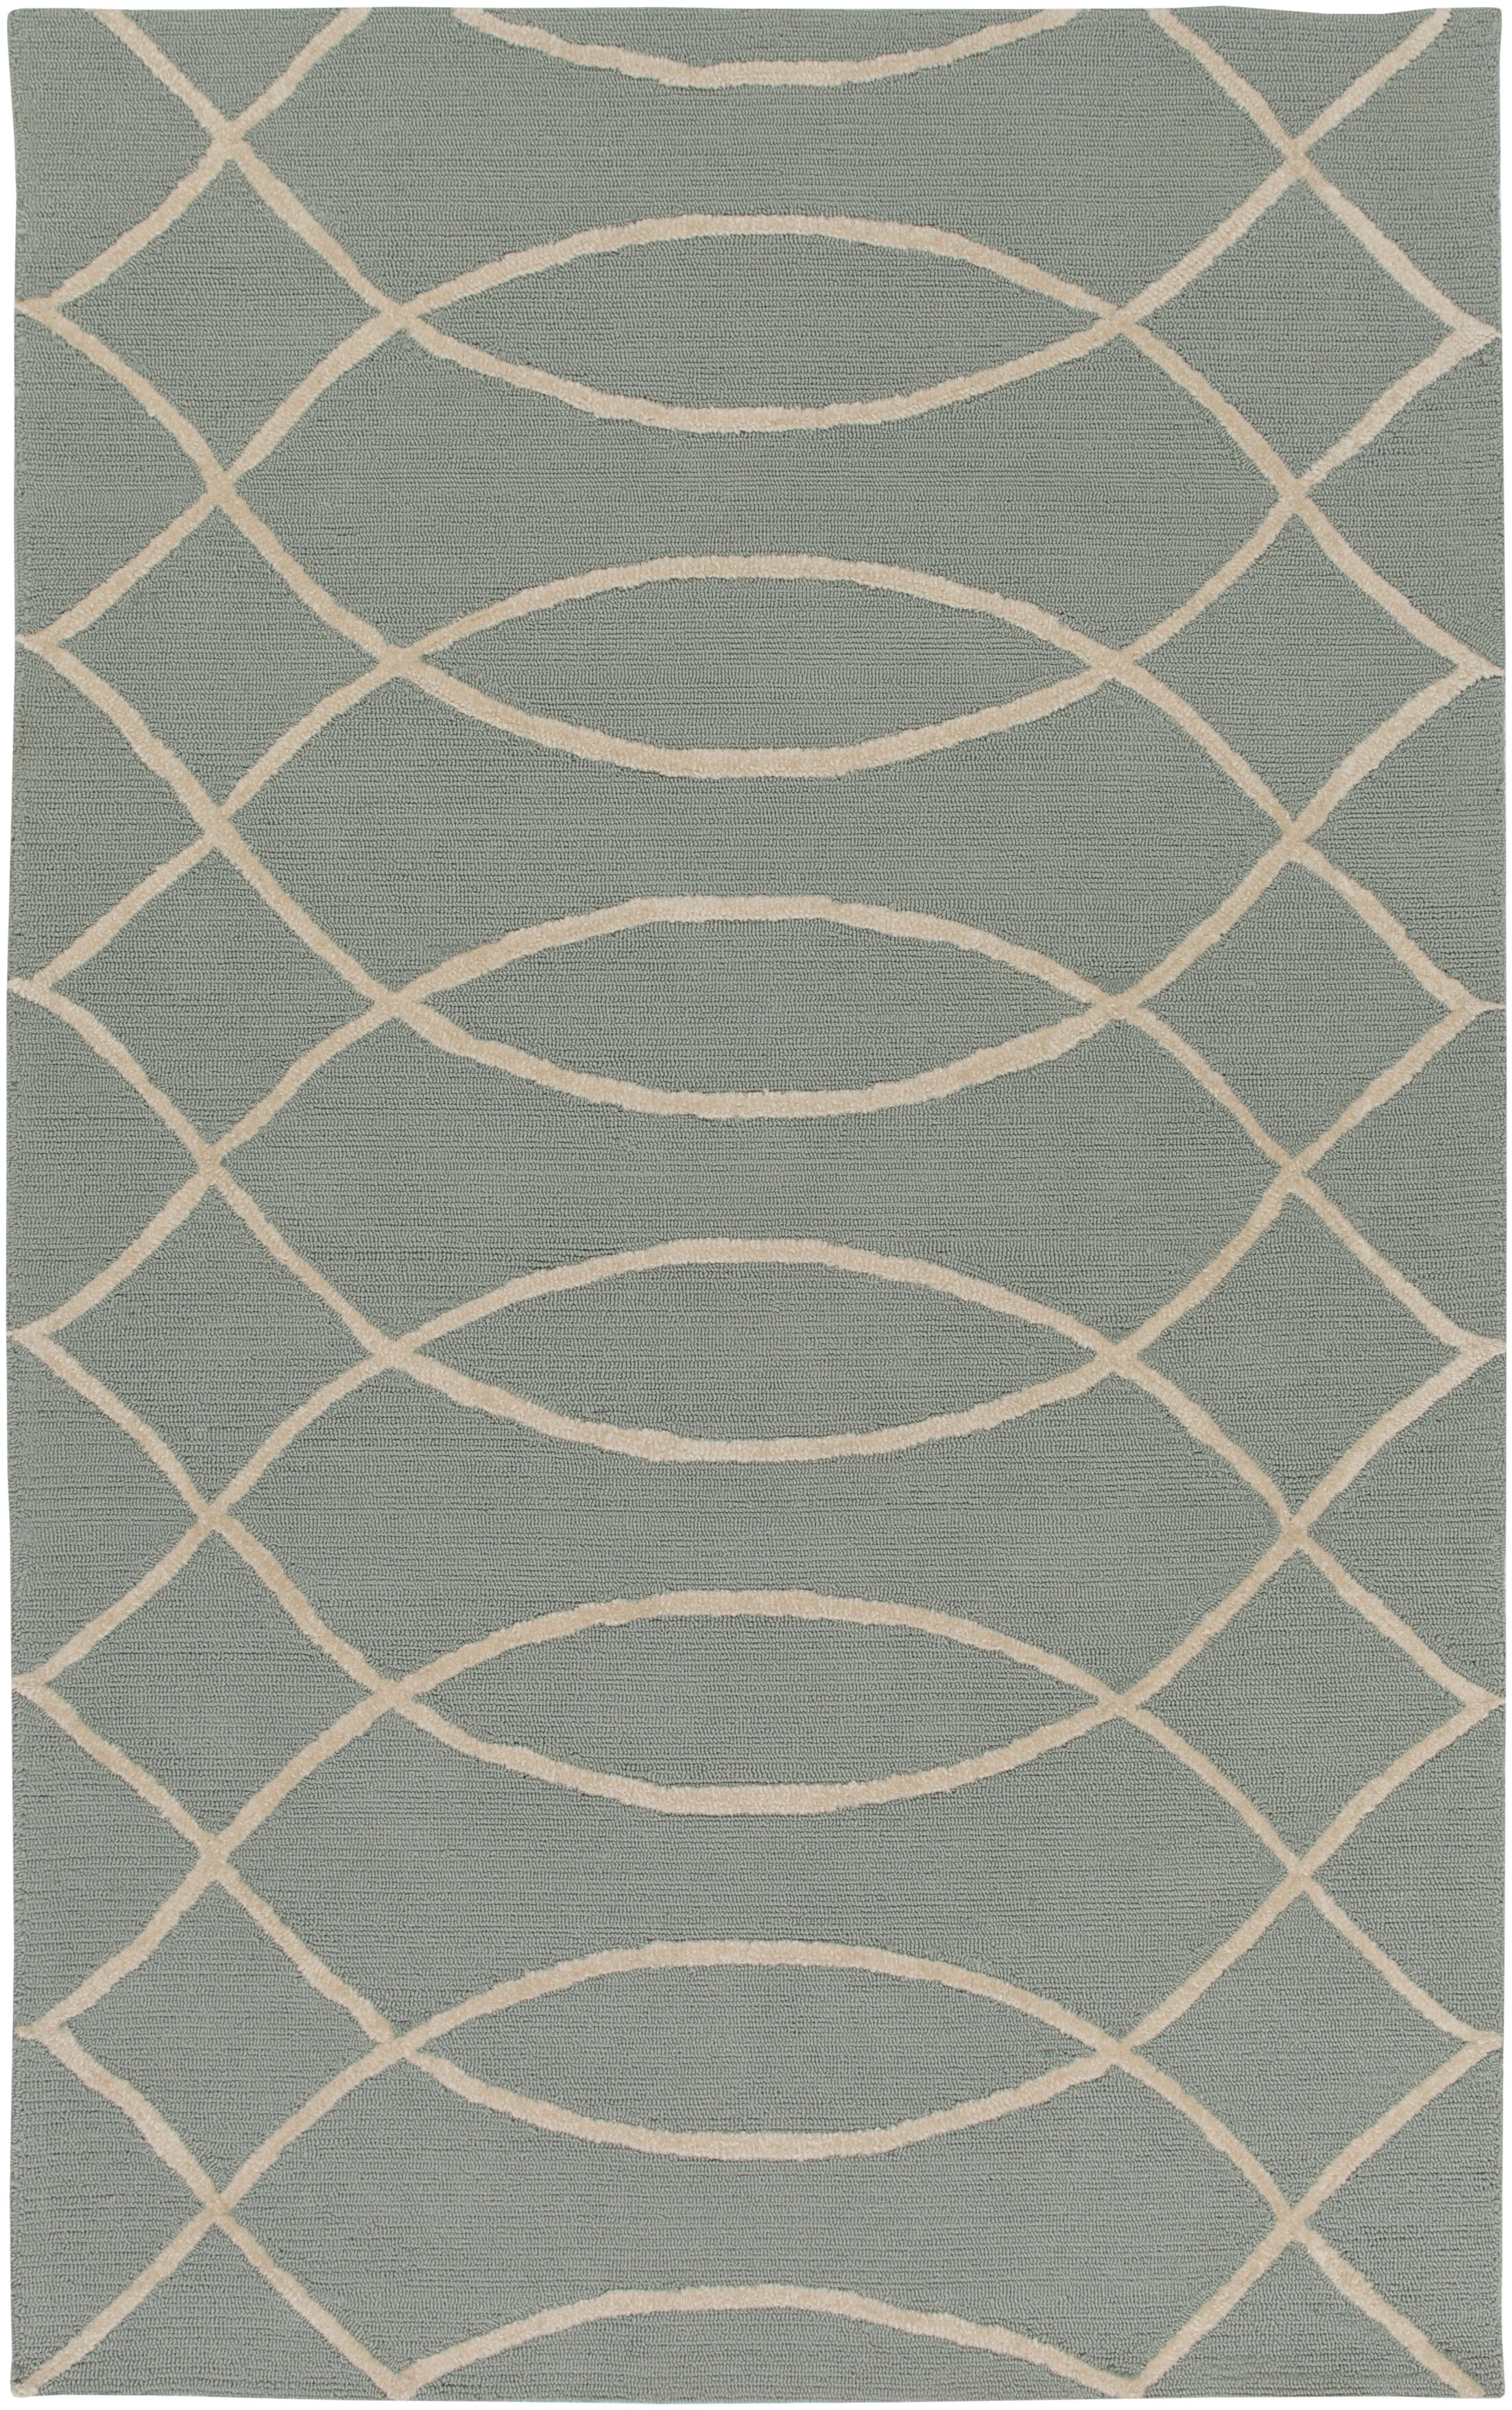 Mcglynn Beige/Light Gray Indoor/Outdoor Area Rug Rug Size: Rectangle 8' x 10'